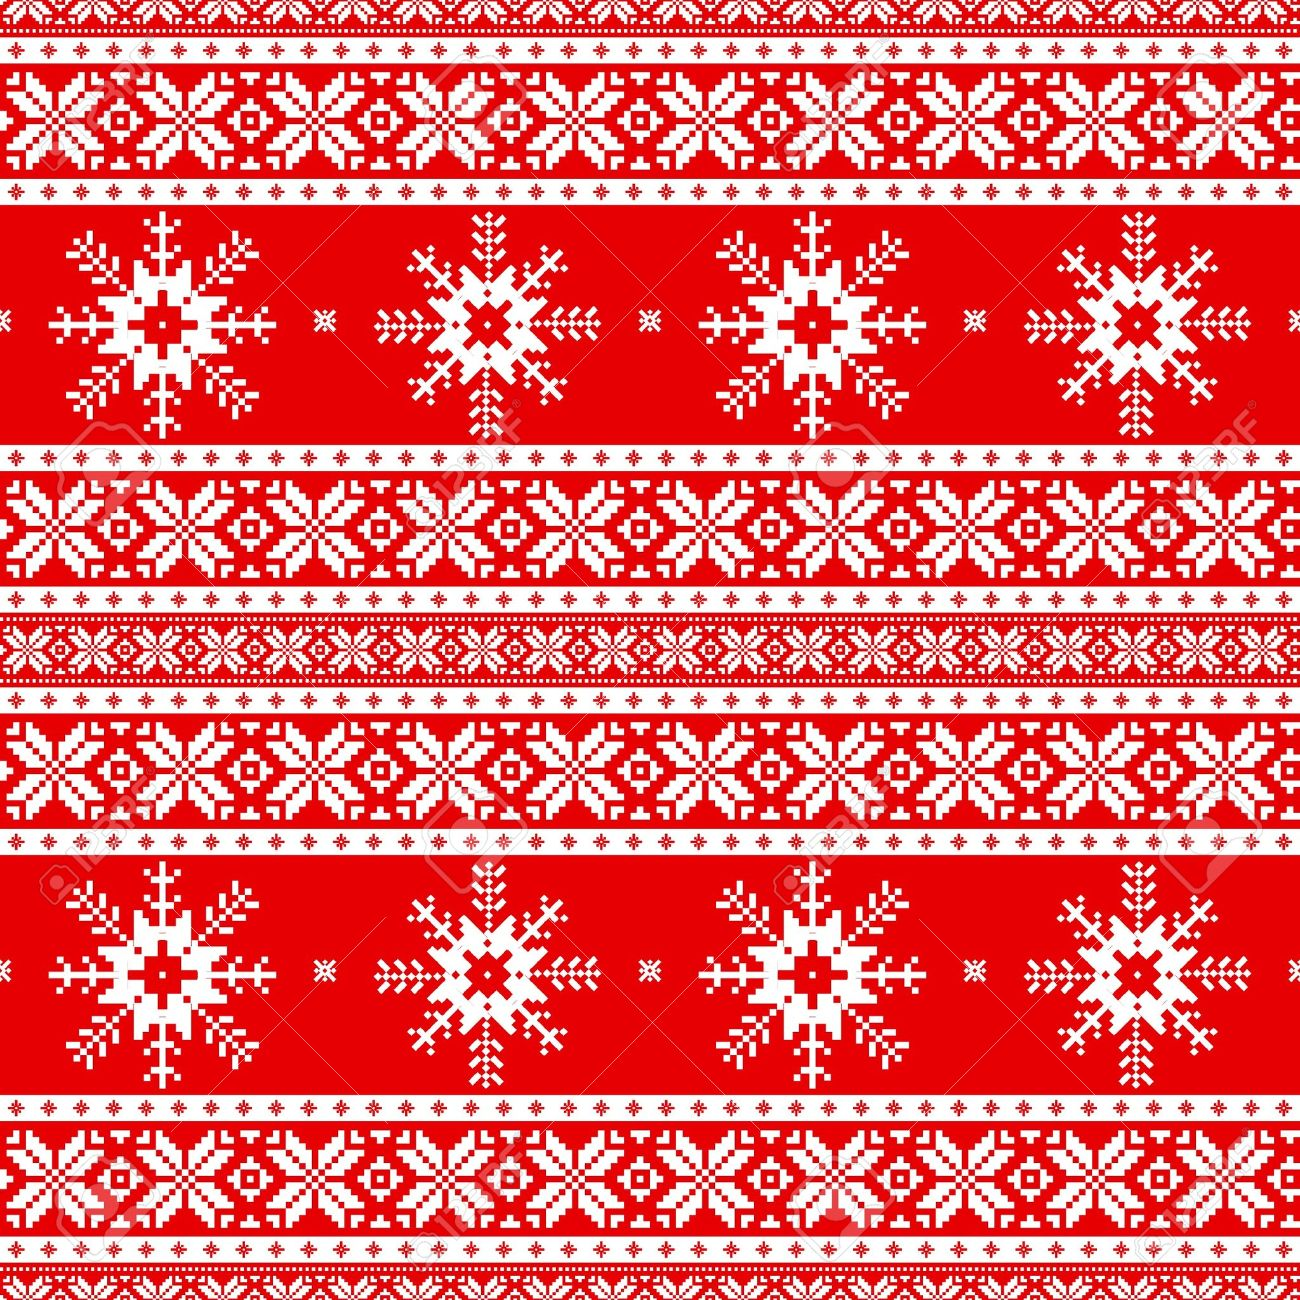 bd07e2596d93 Traditional christmas knitted ornamental pattern with snowflakes Stock  Vector - 15910741